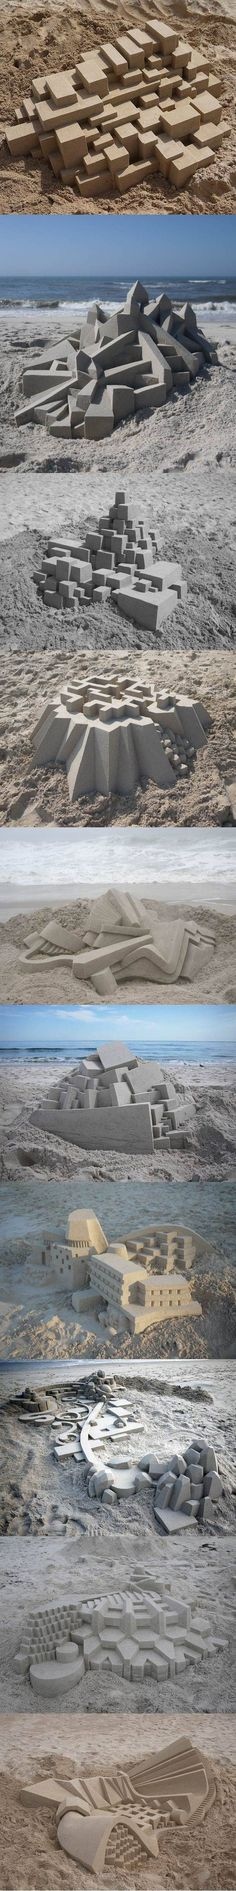 Sand art.some crab on that beach is probs really diggin this new real estate